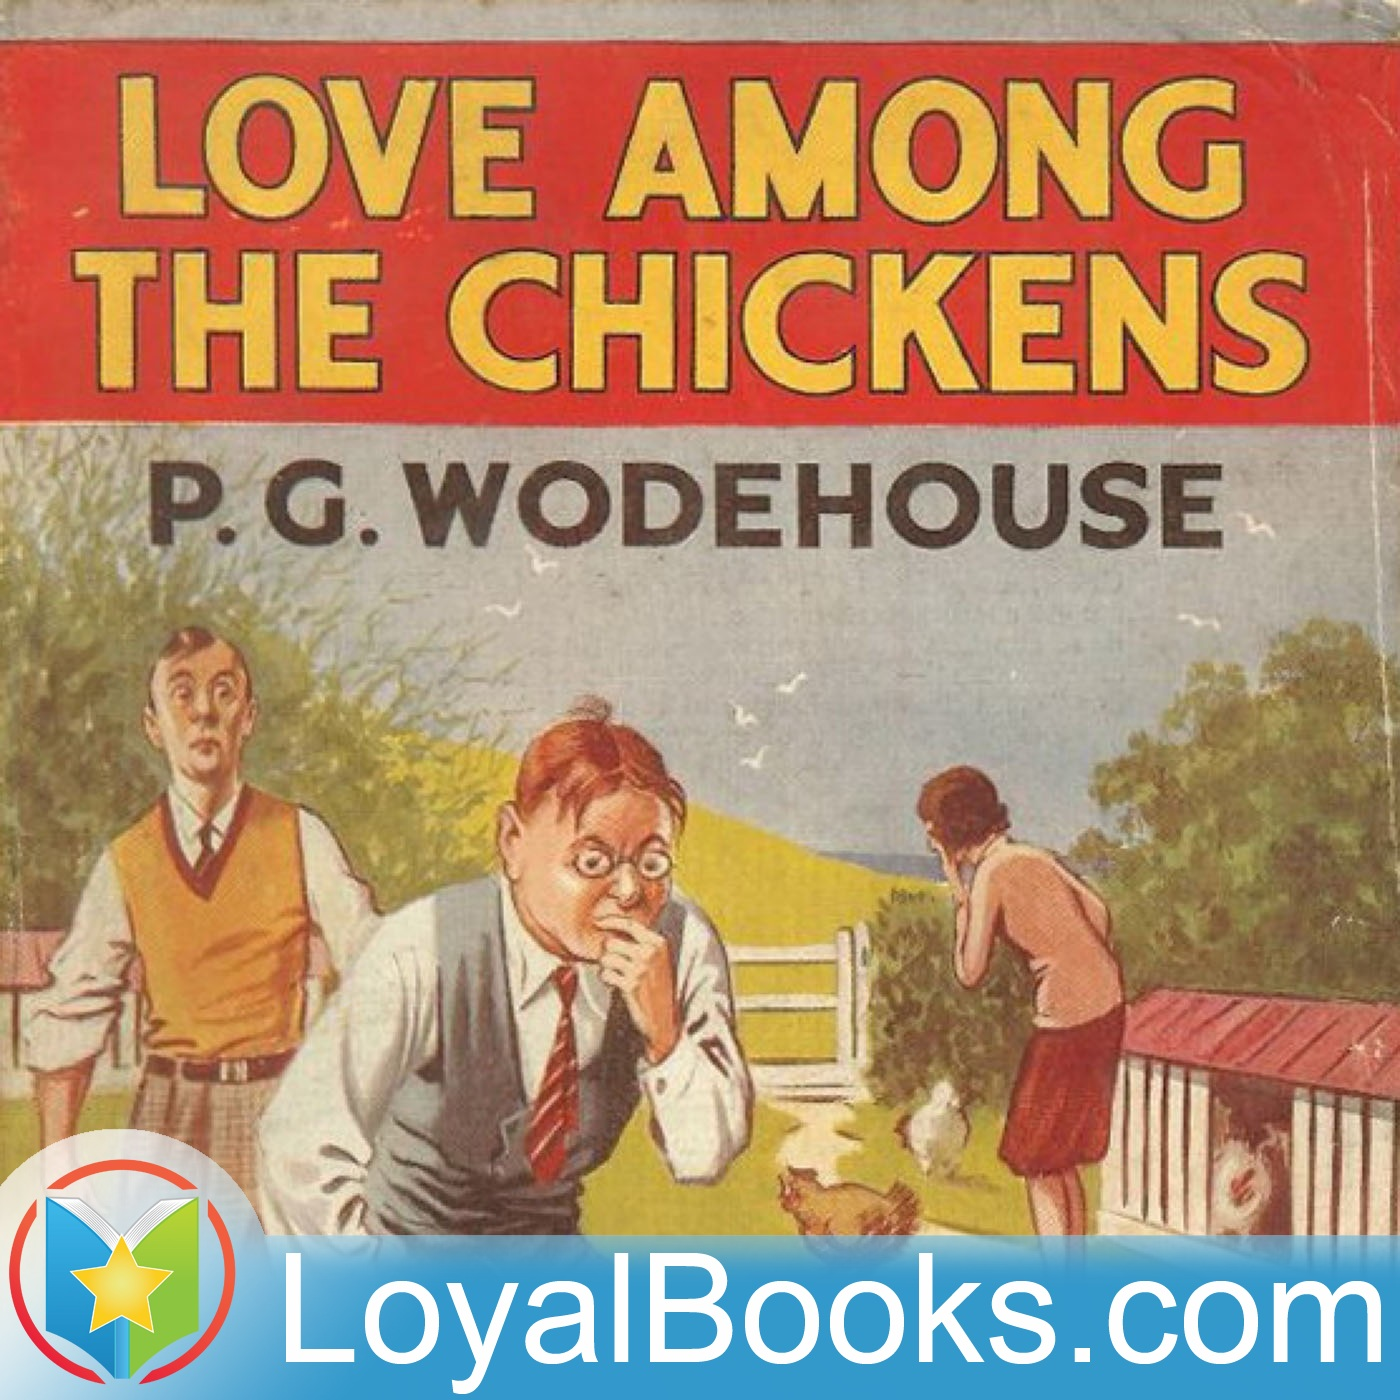 <![CDATA[Love Among the Chickens by P. G. Wodehouse]]>